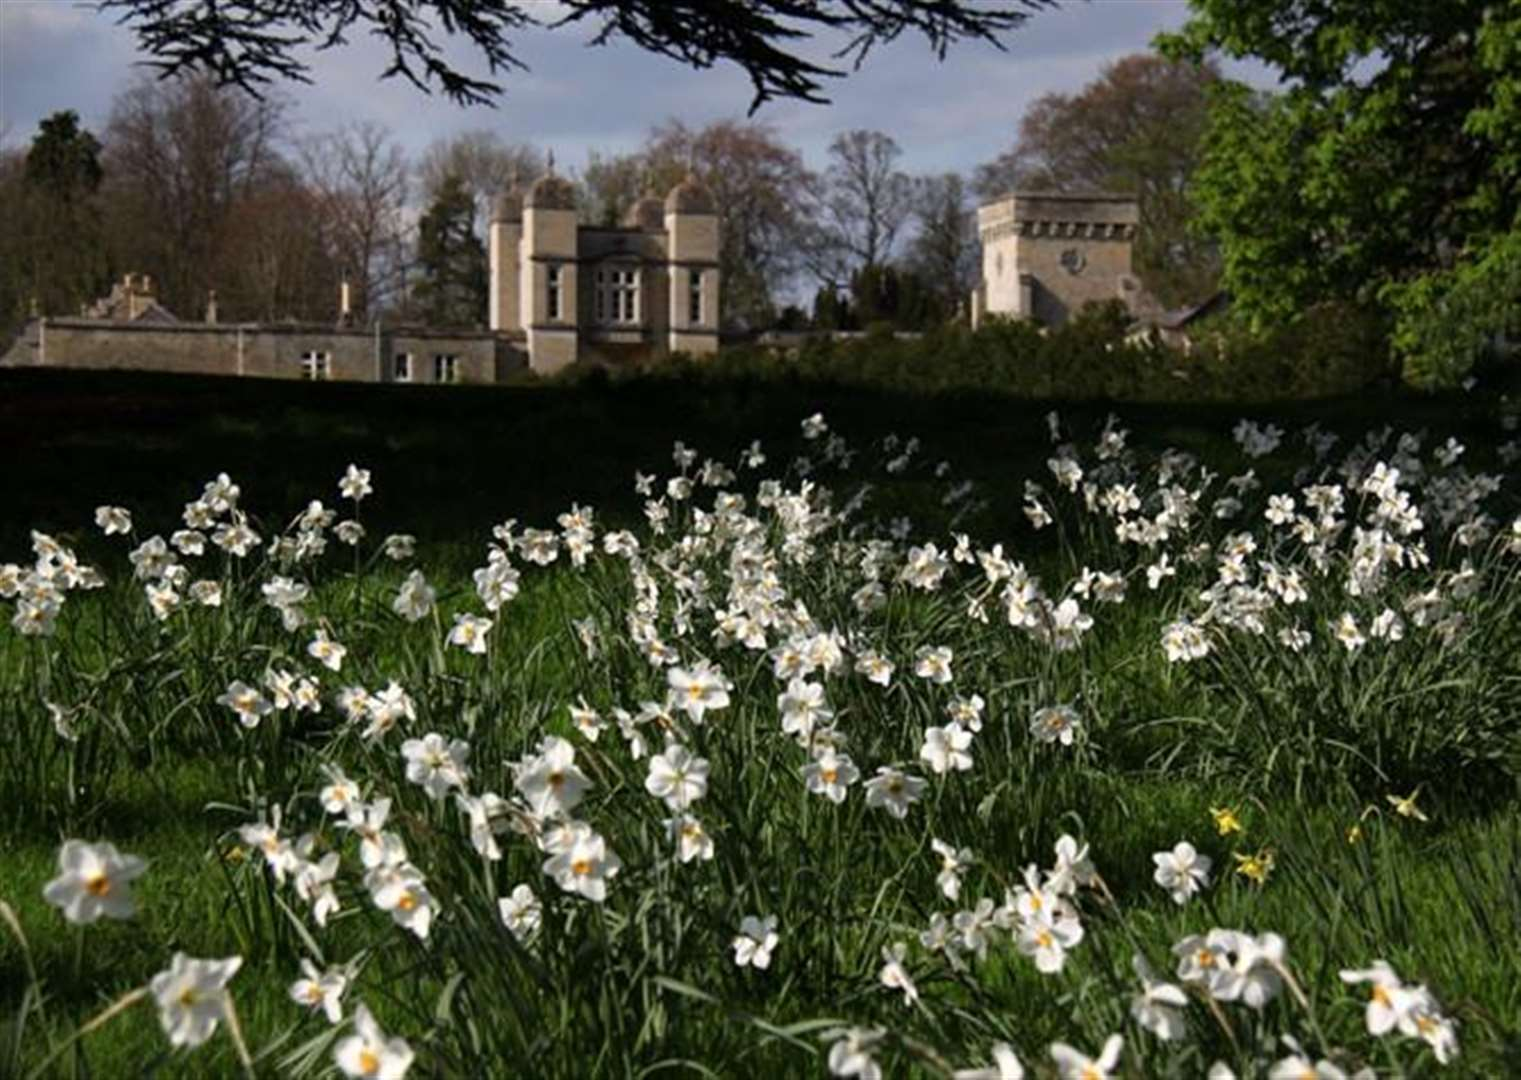 Easton Walled gardens open for Mothers' Day and Easter